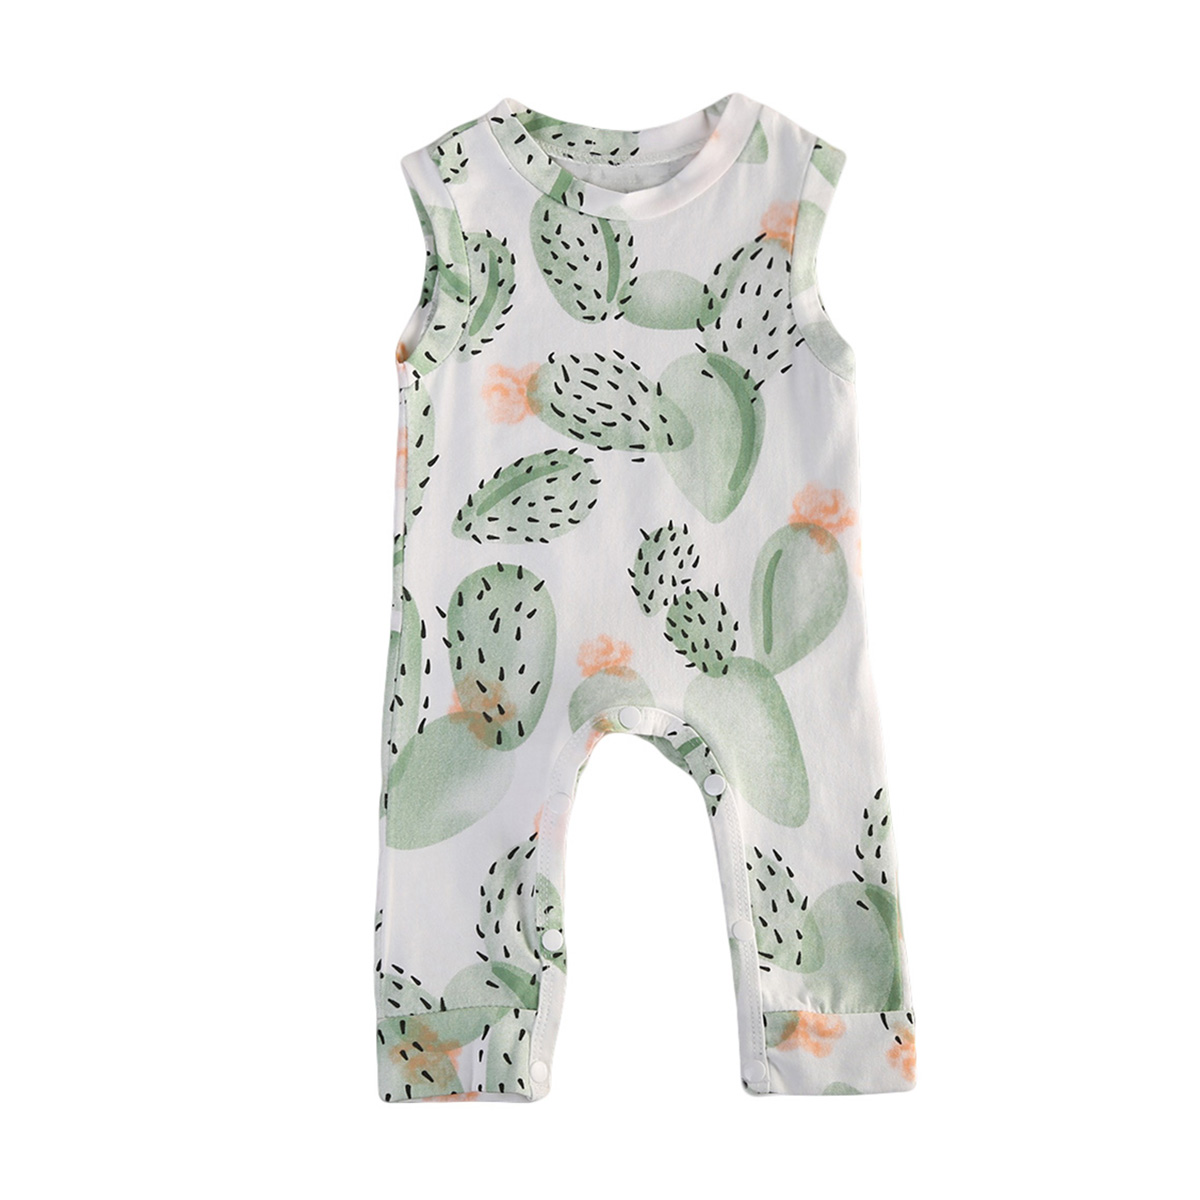 Infant Newborn Baby Boy Girl Kids Cotton   Romper   Jumpsuit Clothes Outfit cactus